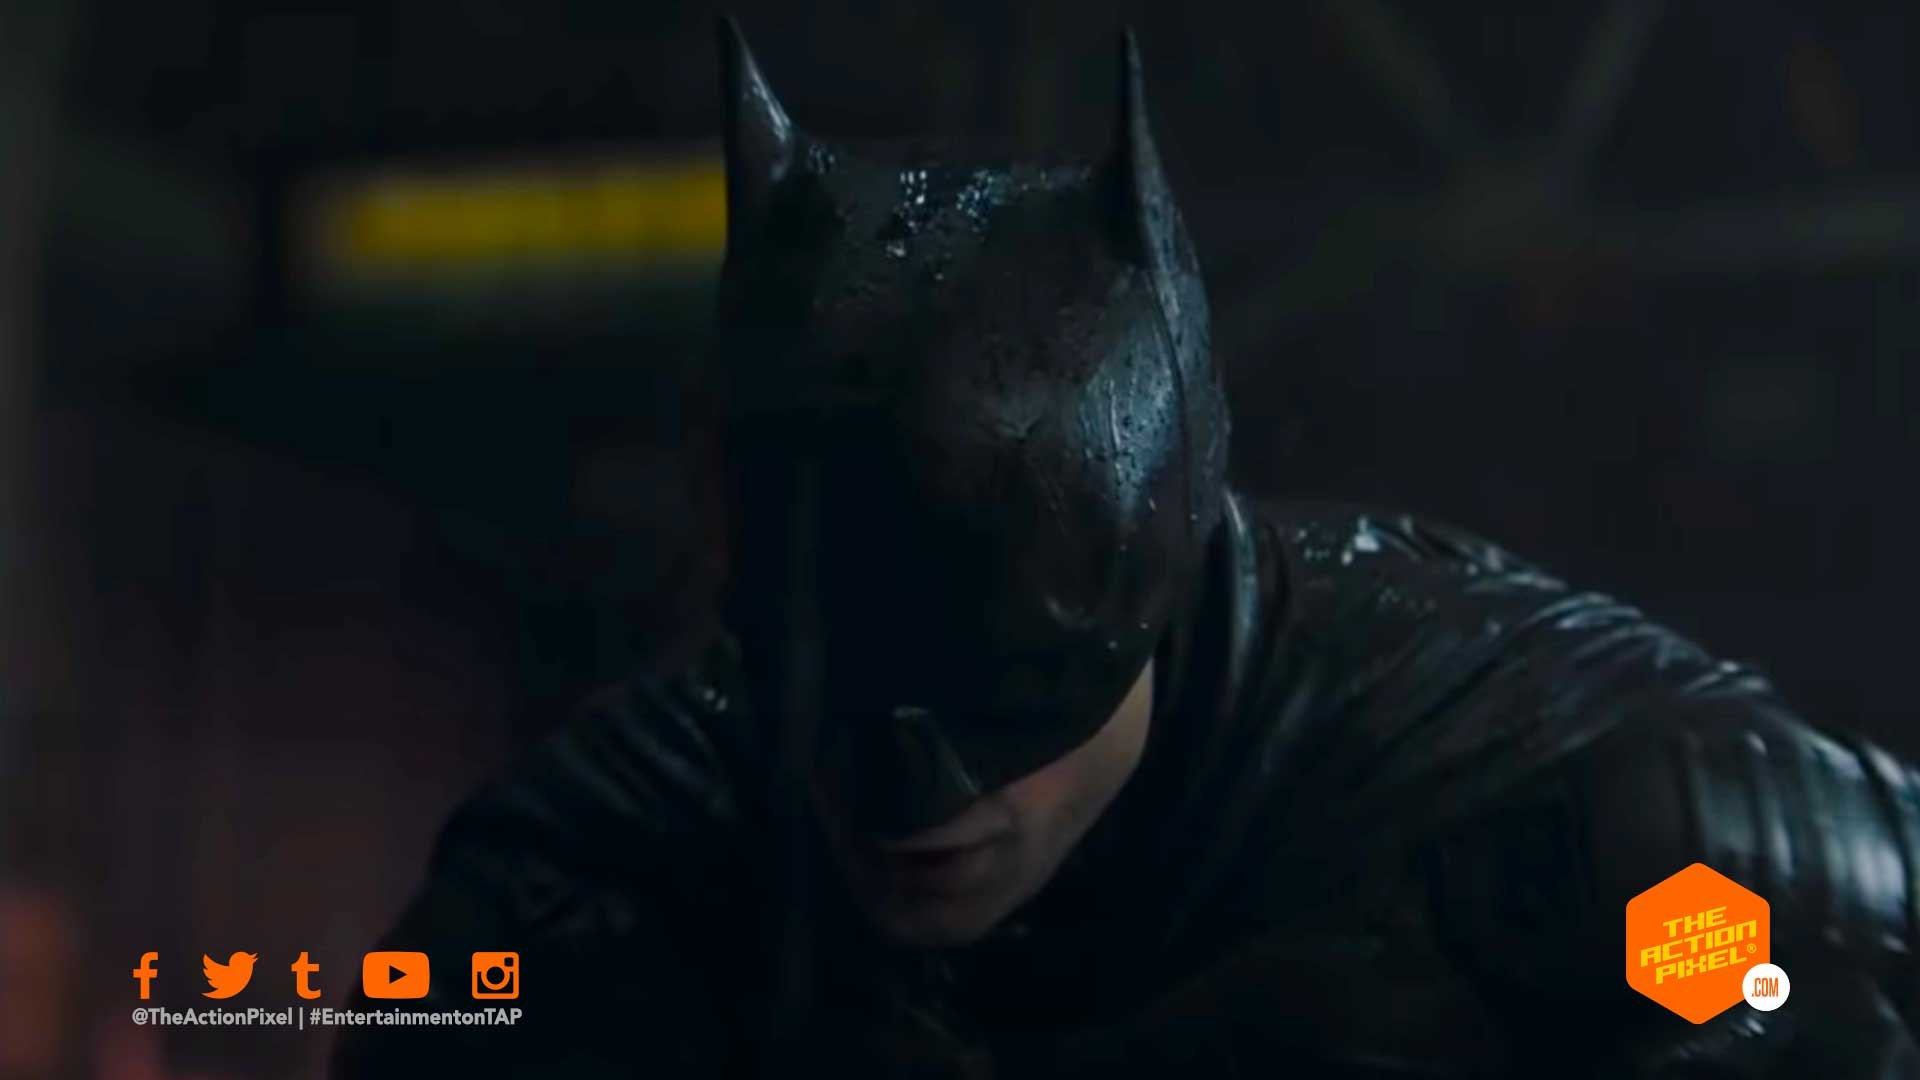 the batman, dc fandome teaser, dc comics, dc movie, dc movies, the batman, matt reeves, dc comics, batman, the dark knight, dc fandome, featured,first look images, the batman teaser trailer, the batman teaser, dc fandome, featured,